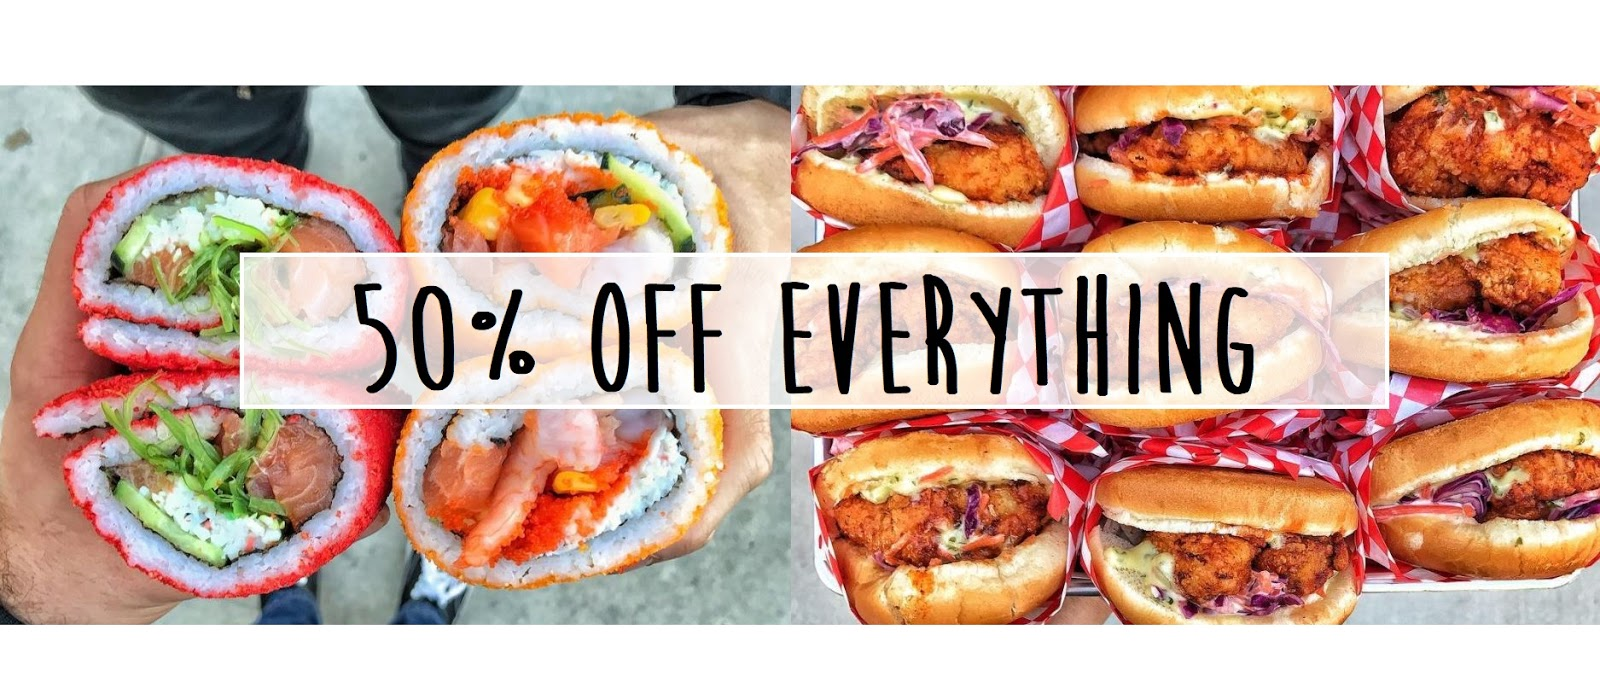 April 7 | Hot Chicks Kitchen and The Lowkey Poke Joint Grand Opens with 50% Off Everything